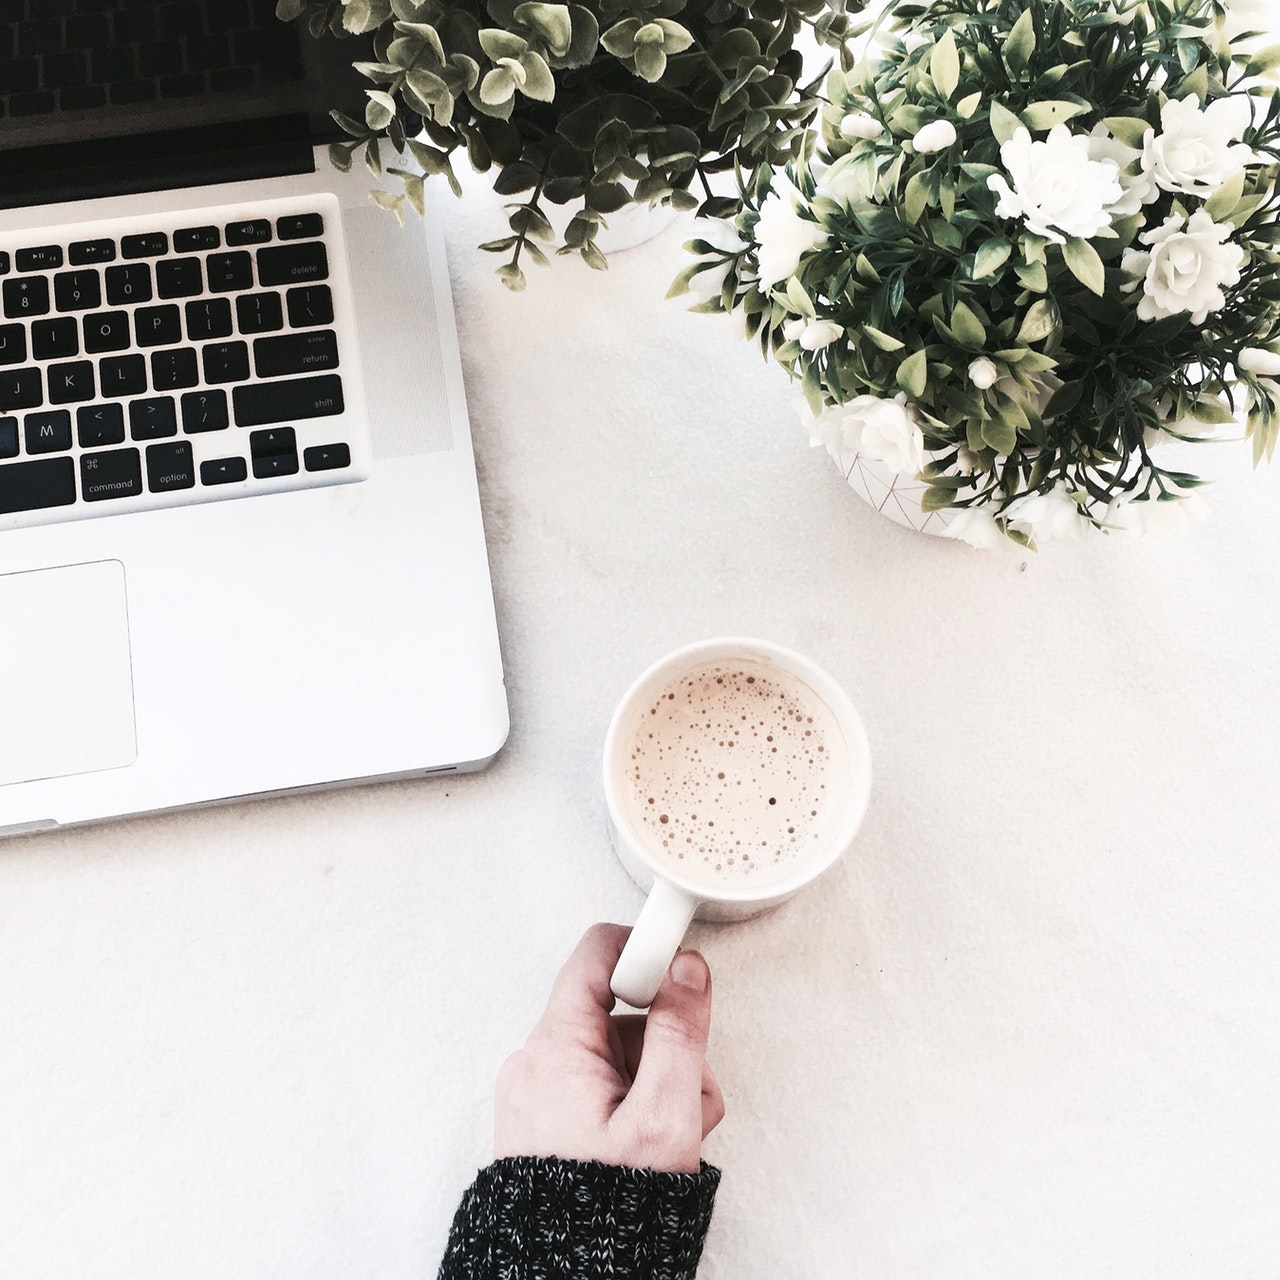 How To Fight Overwhelm As A New Blogger | Is starting a new blog getting you down? Starting anything new can be overwhelming, and blogging doubly so. Most of us don't know a ton of bloggers in our day-to-day lives, so we don't have anyone to turn to when it comes to dealing with it all. Click through for my best tips on battling overwhelm so you can take your blog to the next level. #Blogging #BlogAdvice #BloggingAdvice